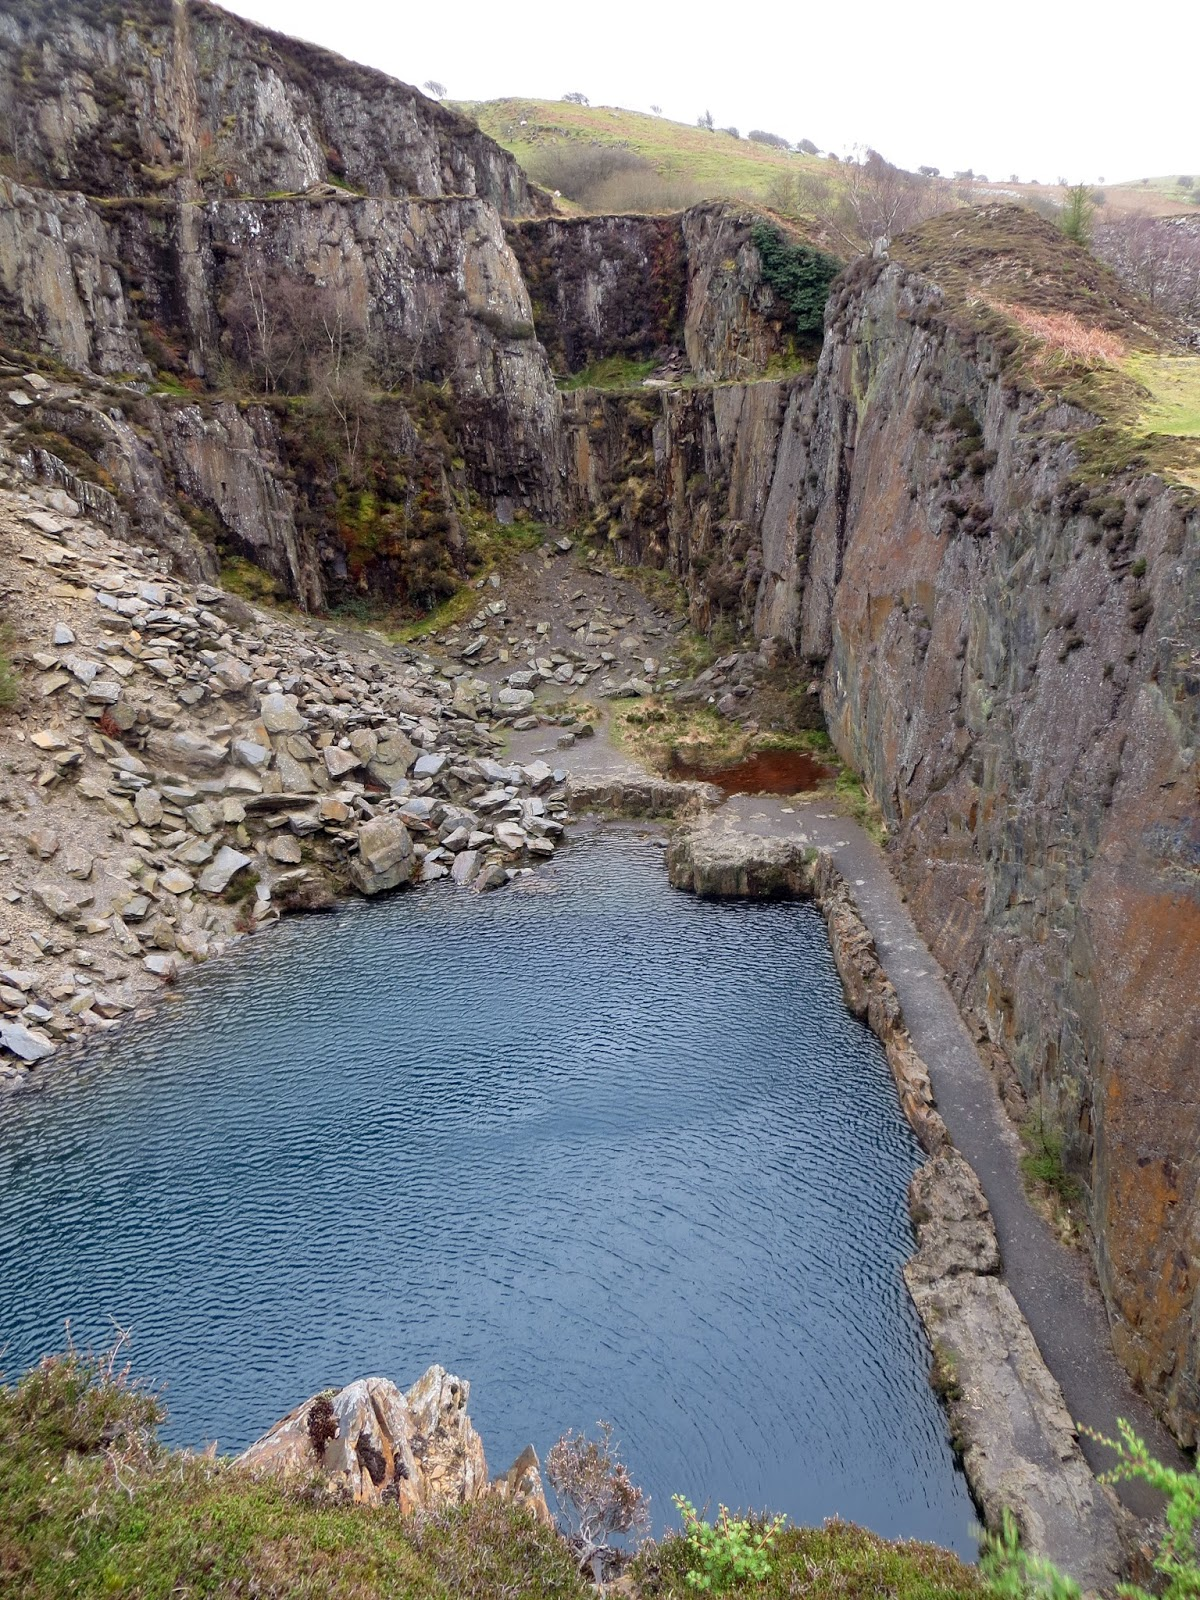 Blue lagoon, blue lake, mid wales, Wales, Snowdonia, abseil, adventure, quarry, abandoned quarry, exploration, wild swimming, location, climbing, rappel, slate quarry, urbex, Golwern Quarry, Goleuwern